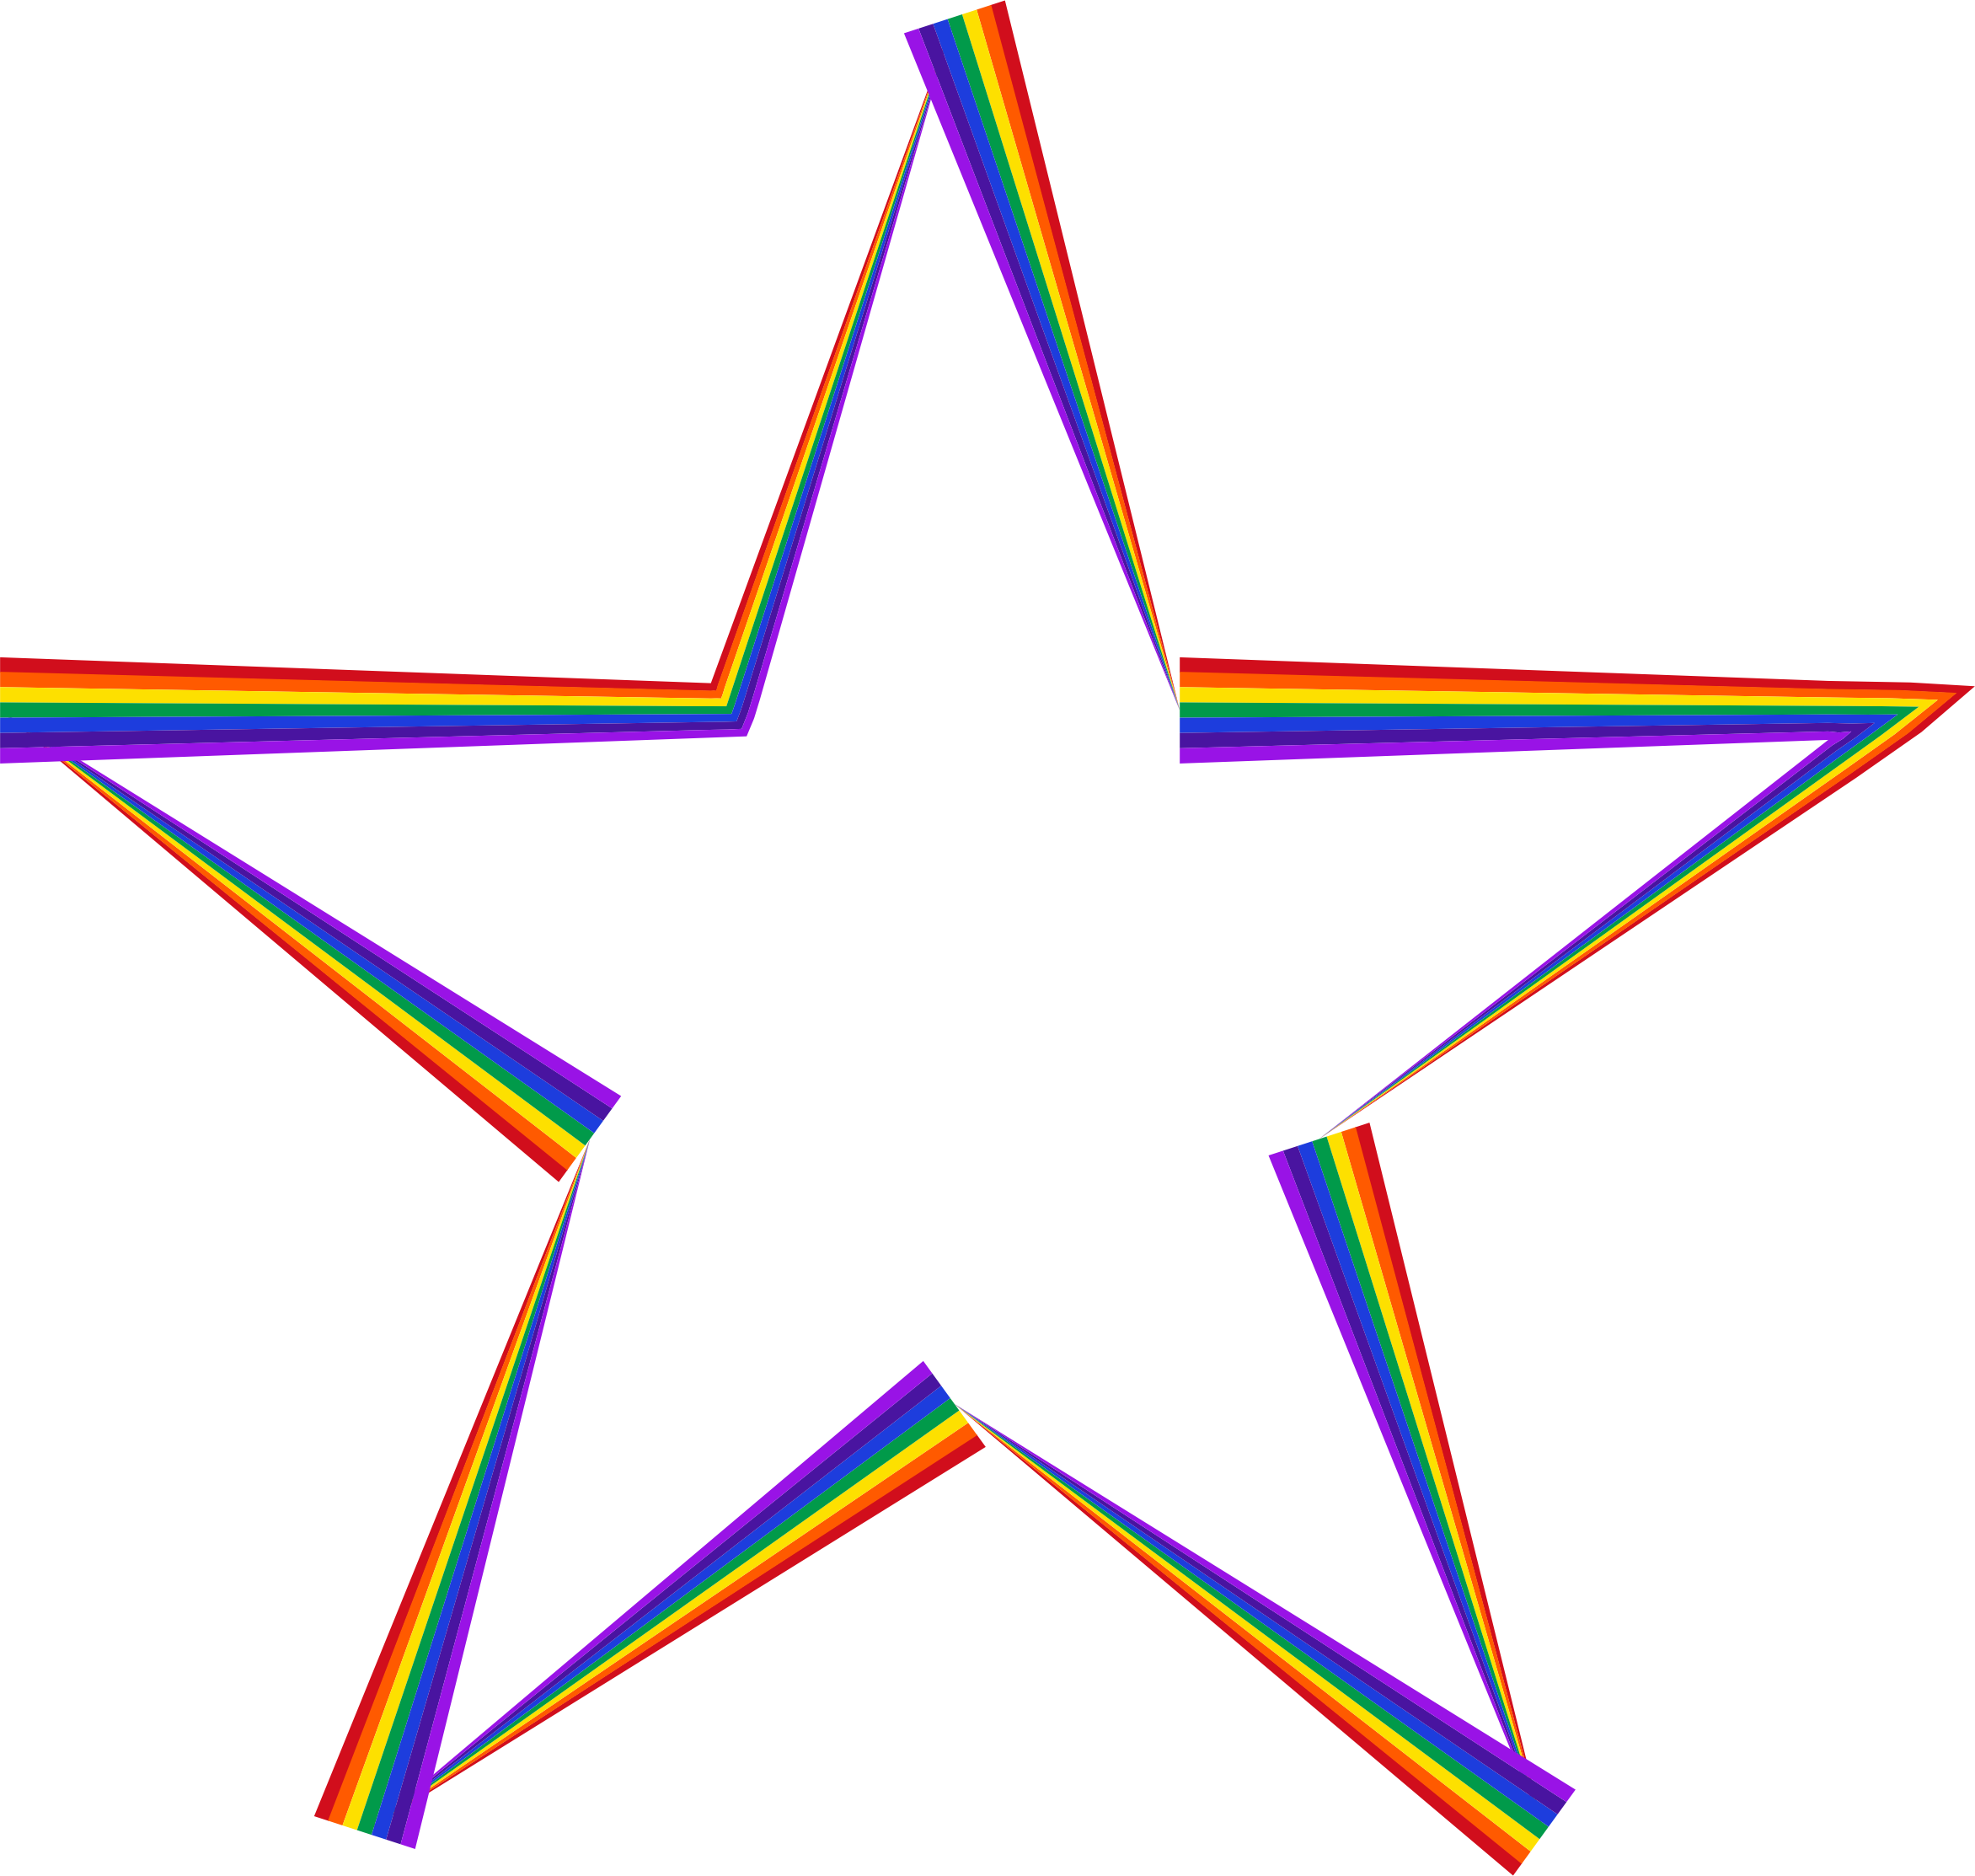 Rainbow Star by GDJ